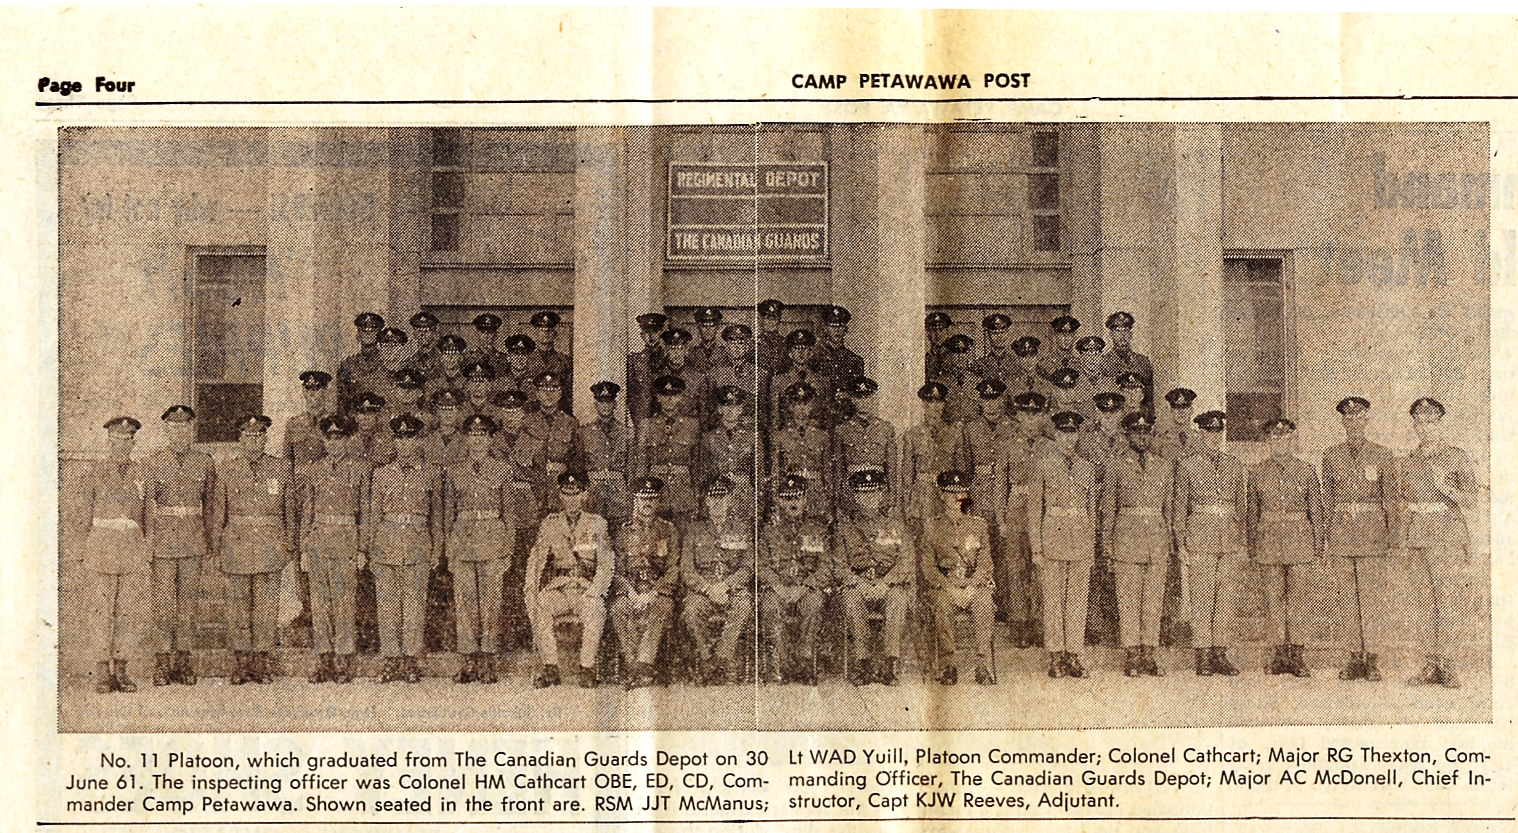 27_RSM McManus-Camp Petawawa Post-Wed 12 Jul 1961 - Pg 4aTop